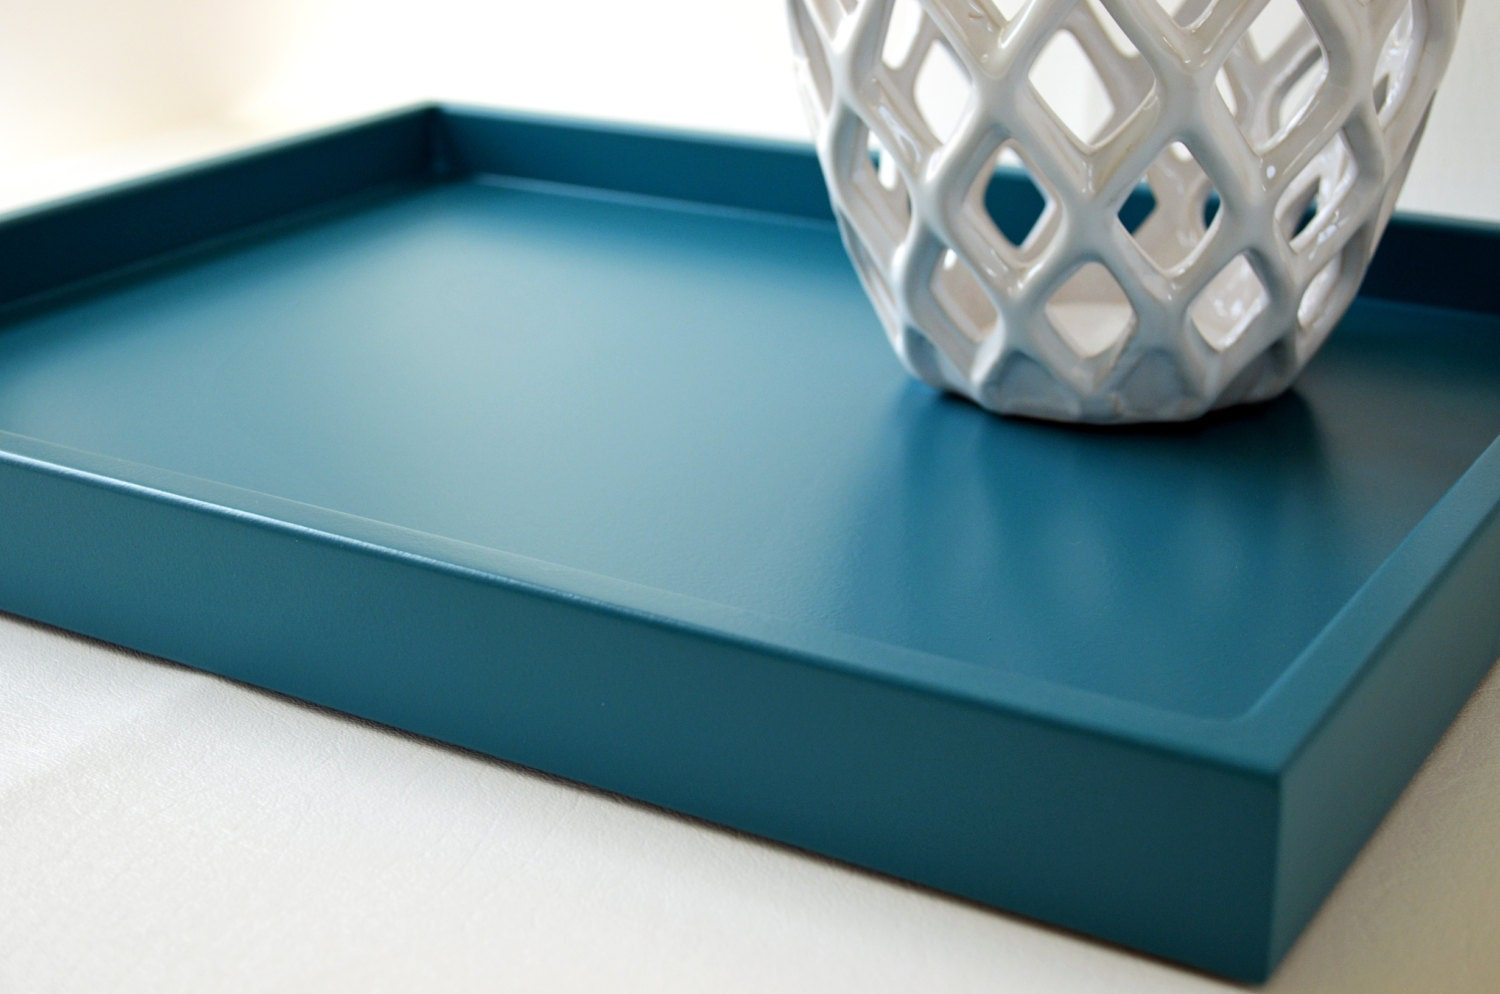 Teal Blue 14 X 18 Shallow Wood Decorative Tray Coffee Table: decorative trays for coffee table